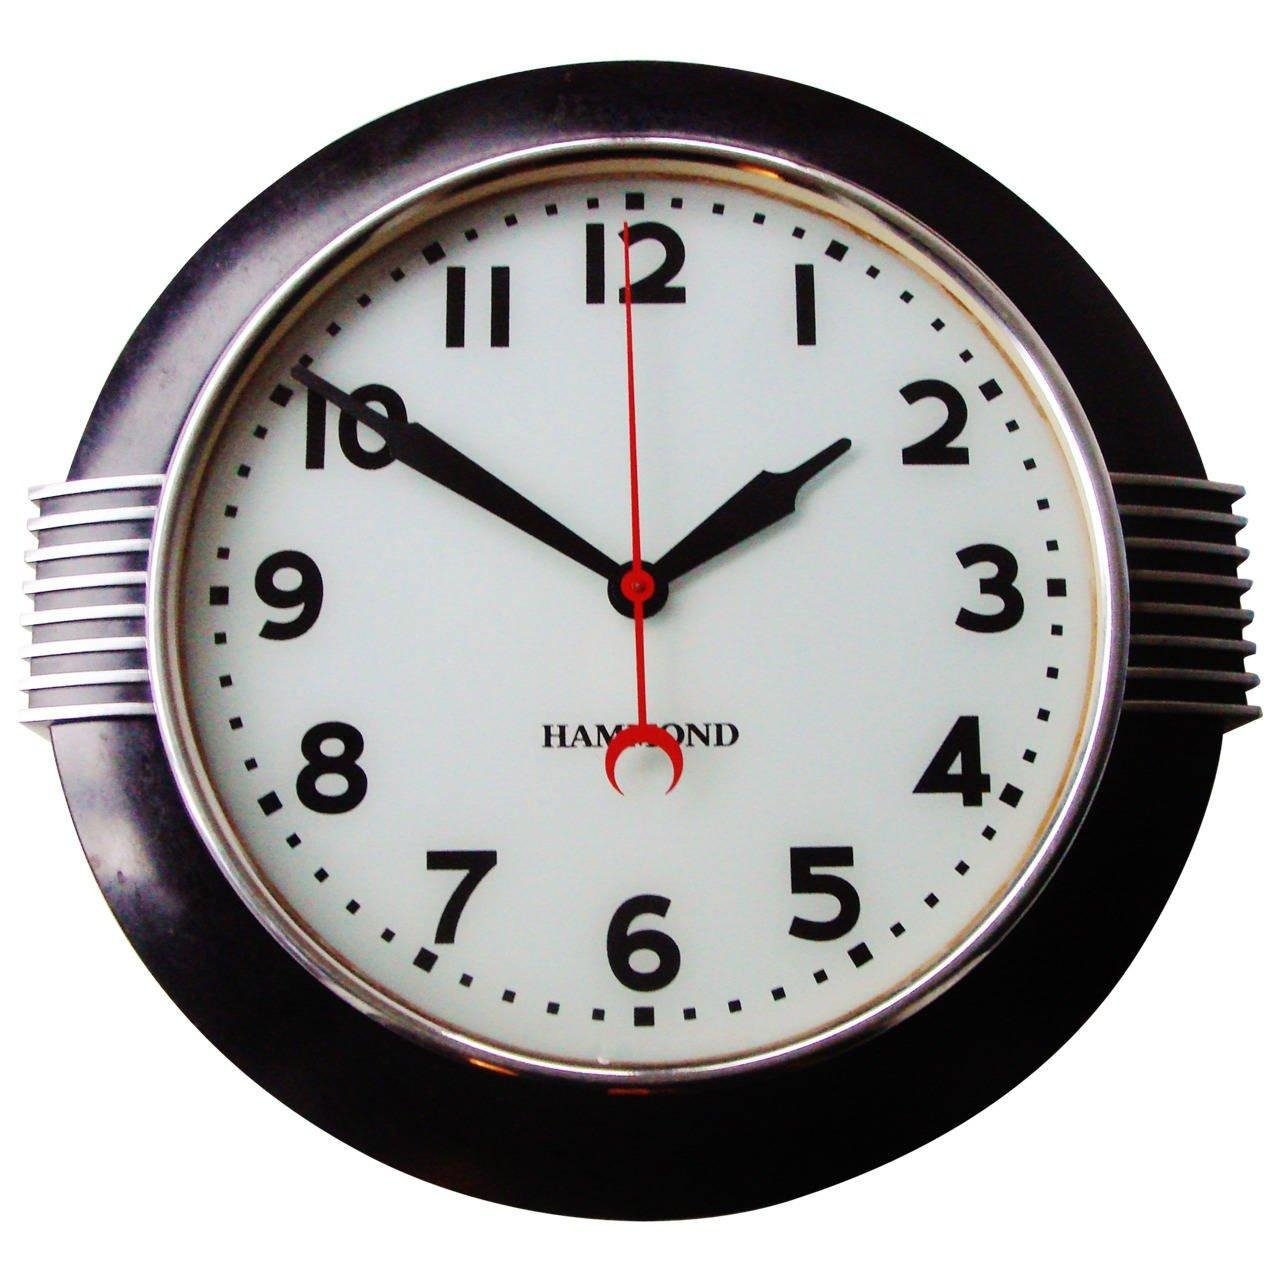 Large American Art Deco Chrome And Black Illuminated Dial Wall In Art Deco Wall Clocks (Image 15 of 20)